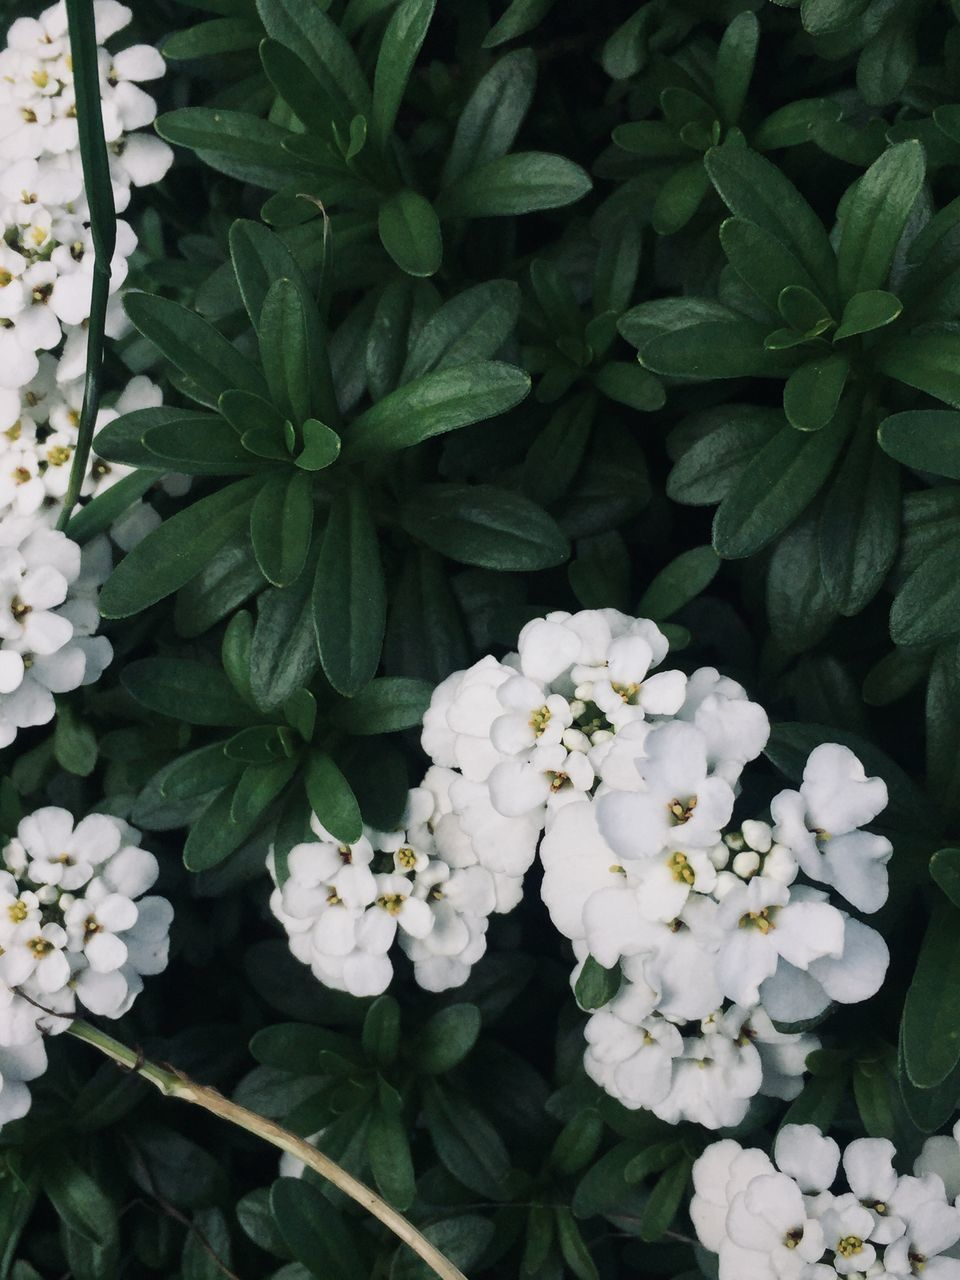 plant, flowering plant, flower, growth, beauty in nature, vulnerability, freshness, fragility, plant part, leaf, white color, nature, petal, day, close-up, inflorescence, no people, green color, flower head, botany, outdoors, springtime, bunch of flowers